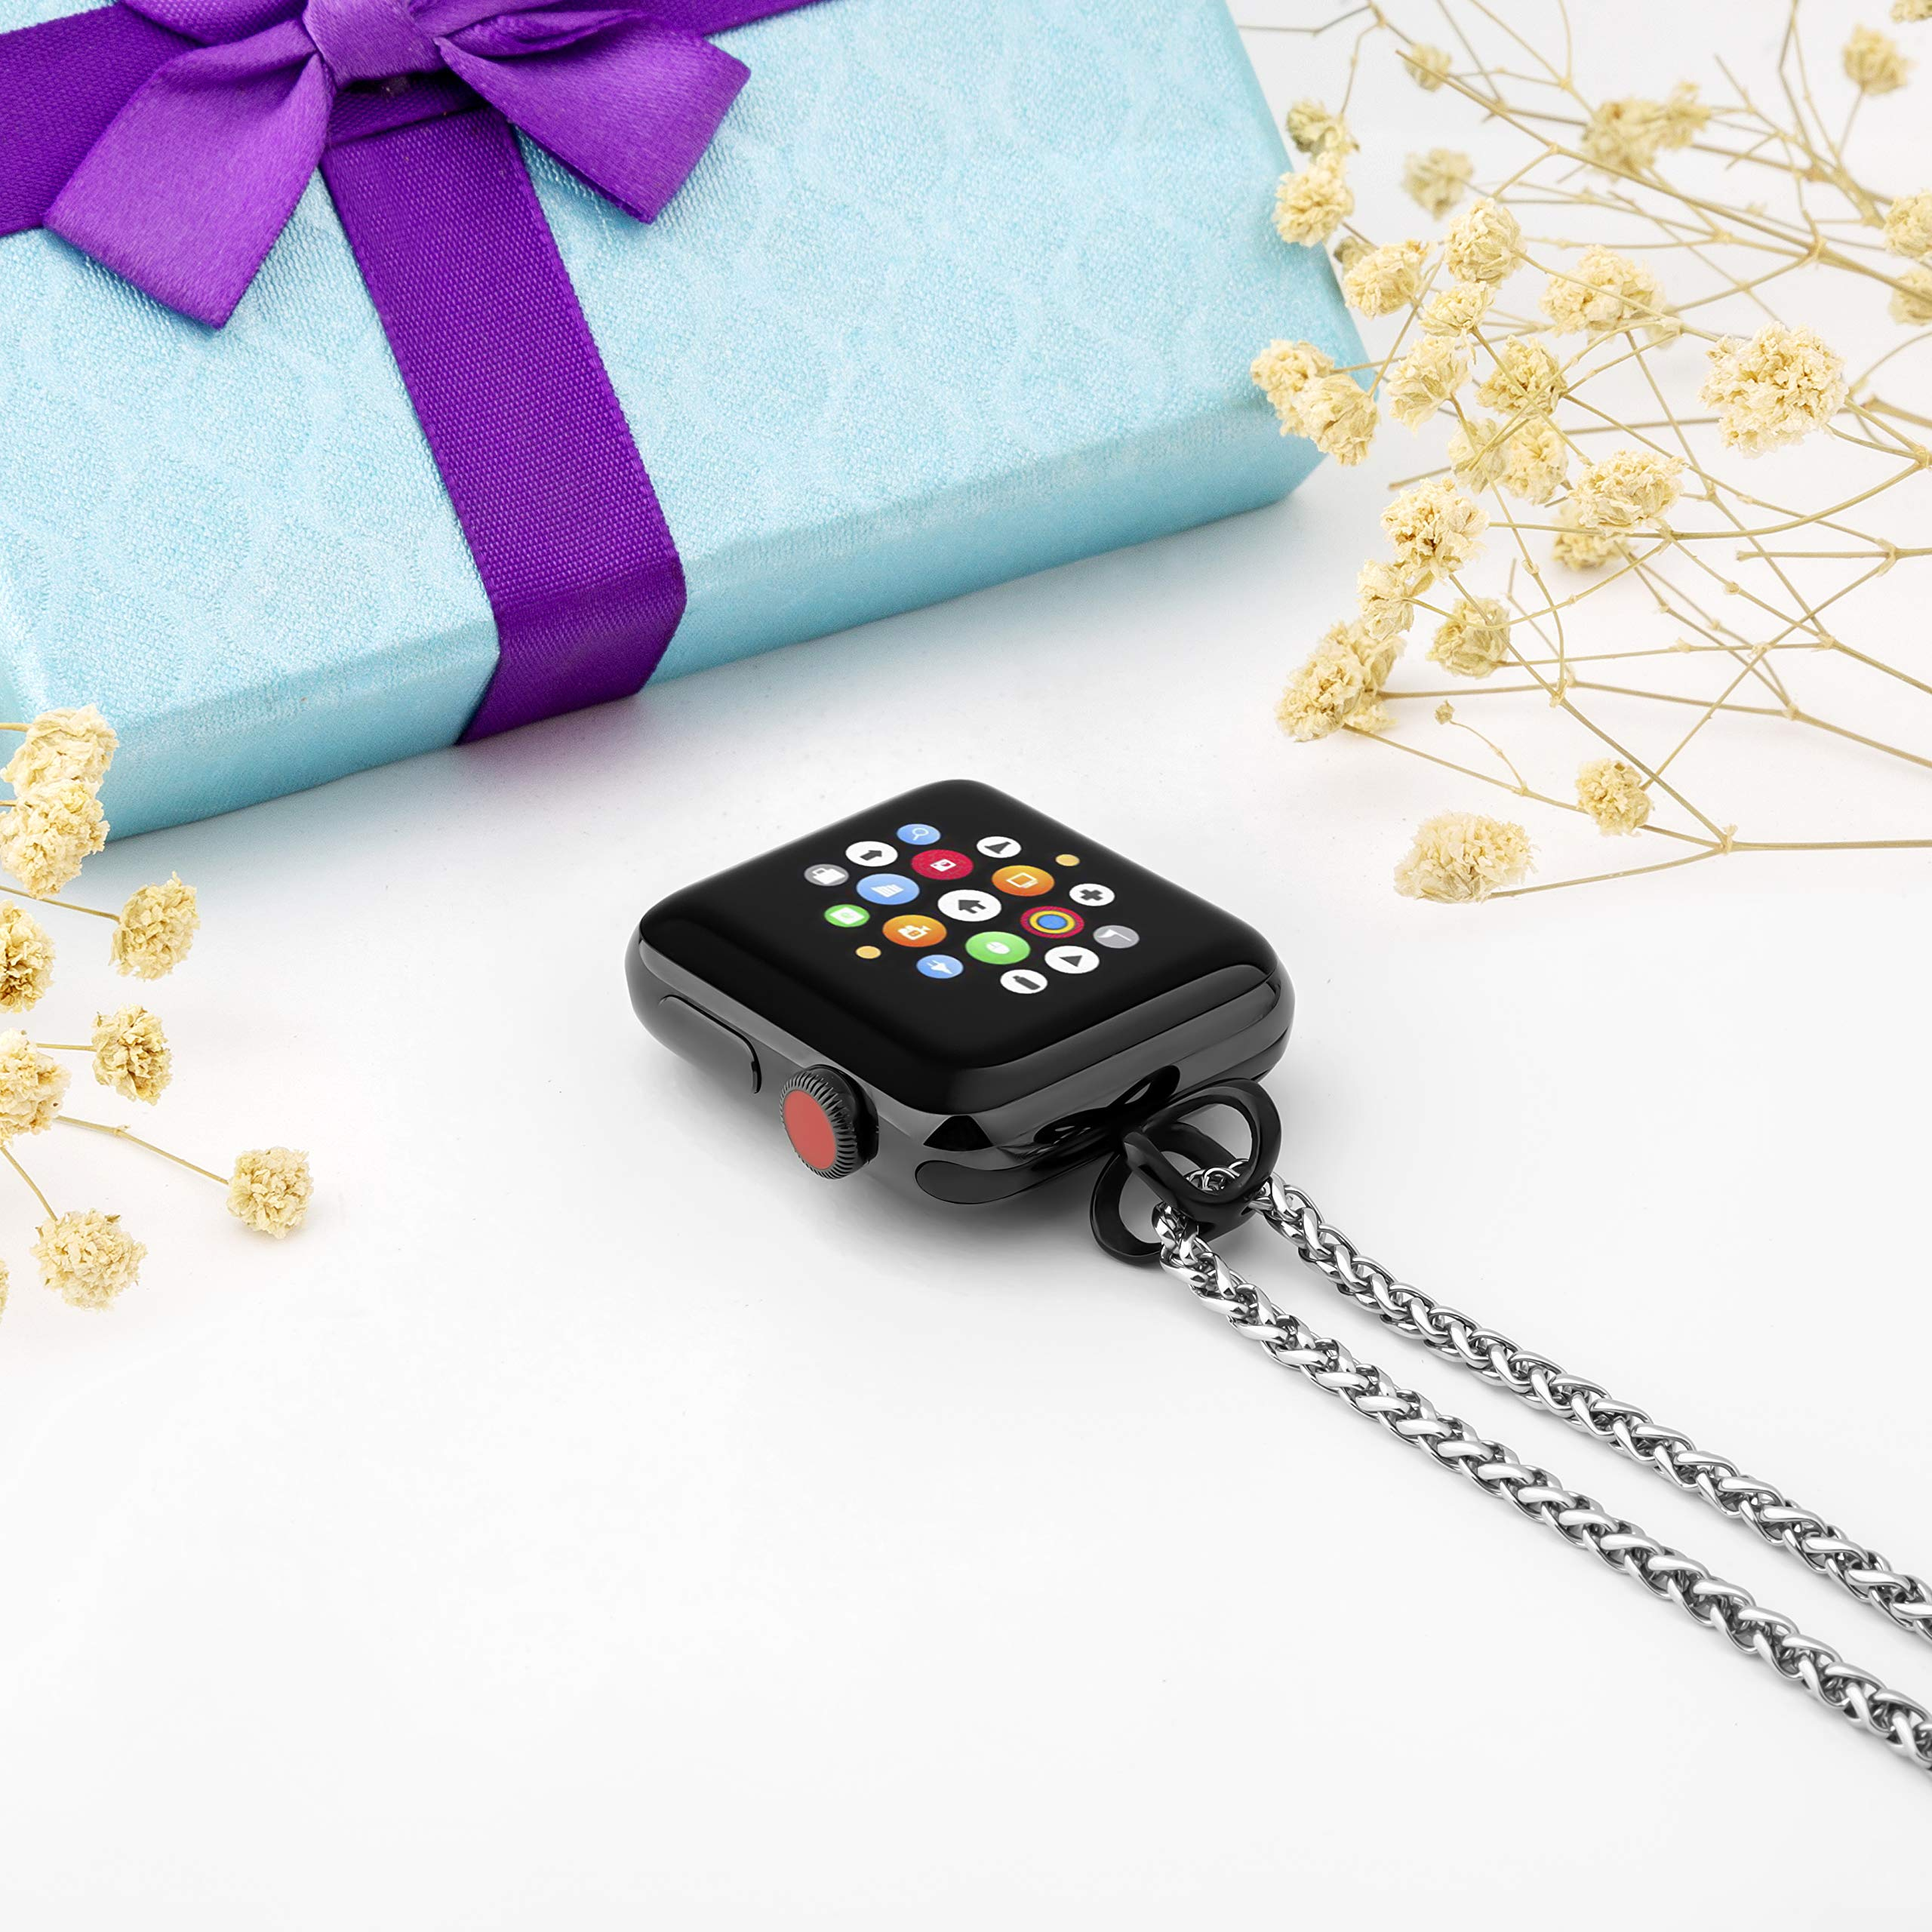 AsiaFly Necklace Pendant Compatible Apple Watch, Infinity & Double Loop Connector for Apple Watch Series 4, Series 3, Series 2, Series 1 Sport & Edition - Black 42/44mm Infinity by AsiaFly (Image #6)